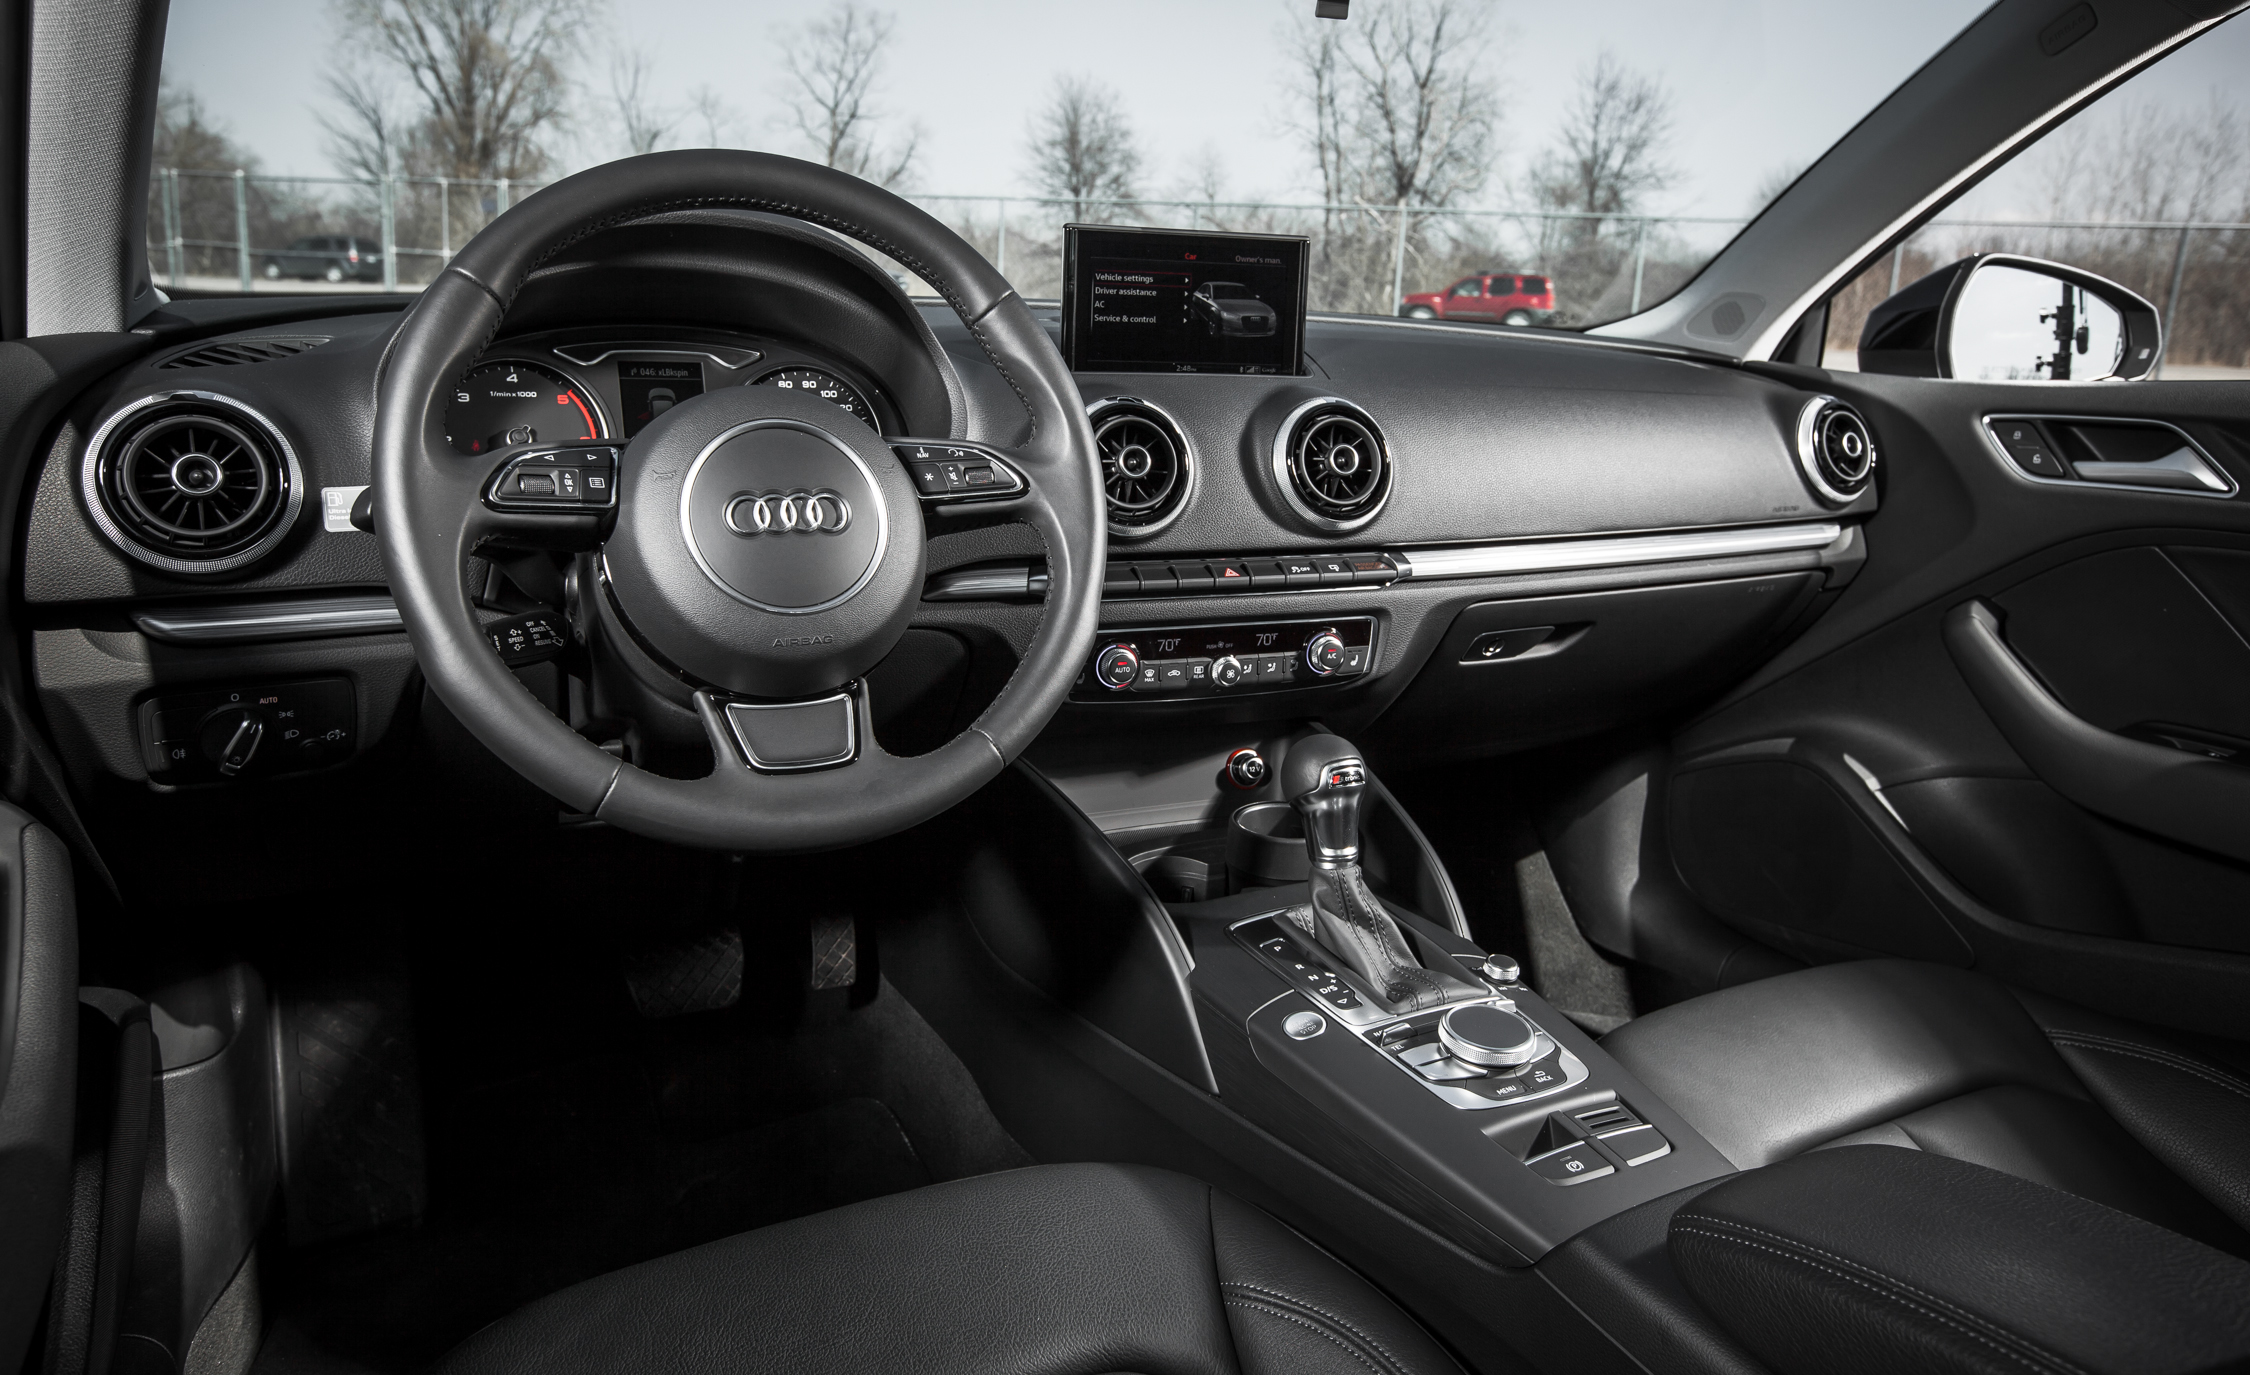 2015 Audi A3 TDI Interior Steering And Dash (Photo 39 of 50)